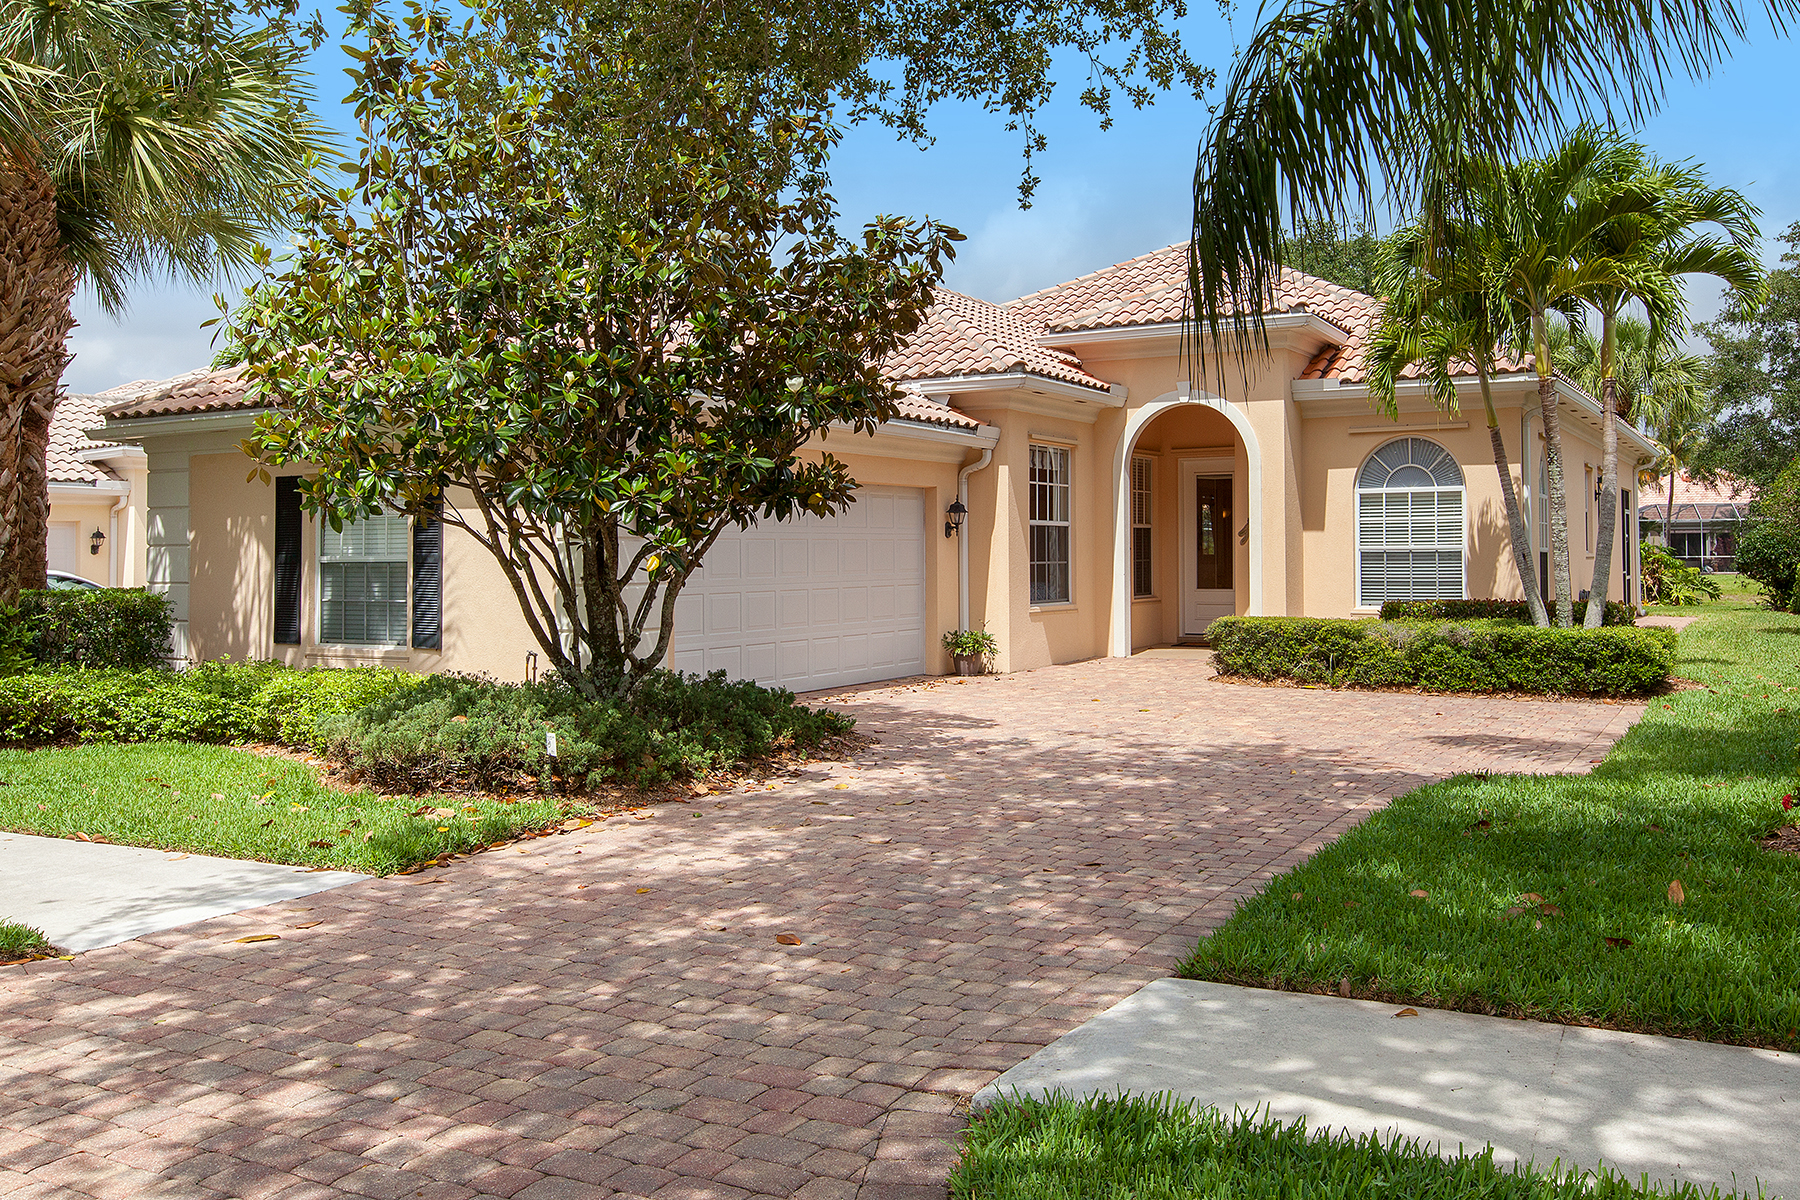 Single Family Home for Sale at Naples-Island Walk 2930 Gilford Way, Naples, Florida 34119 United States